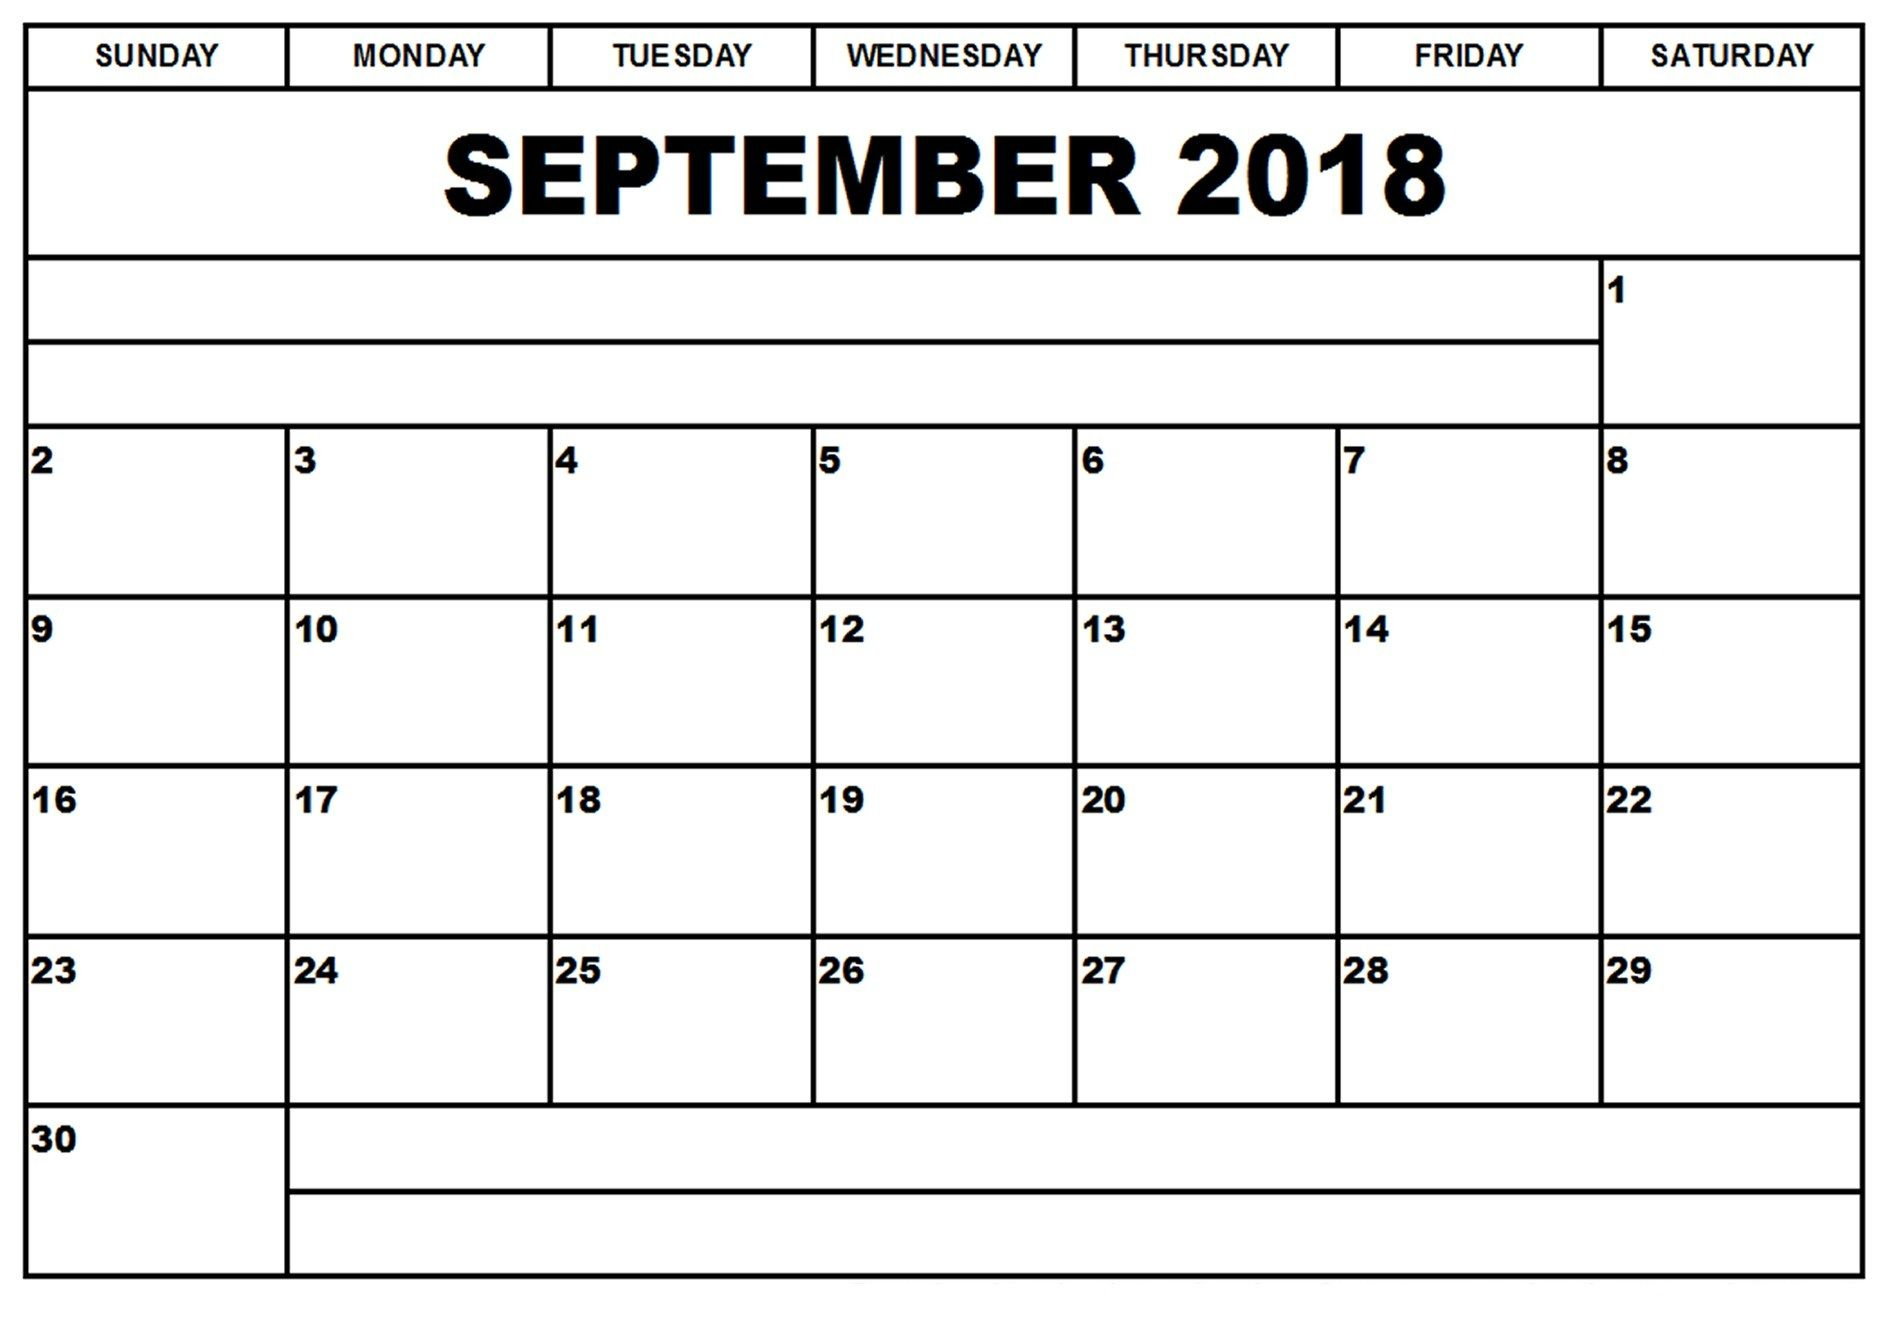 Blank September 2018 Clipart Calendar With Notes | Free Printable within Aug Calendar Clip Art Template